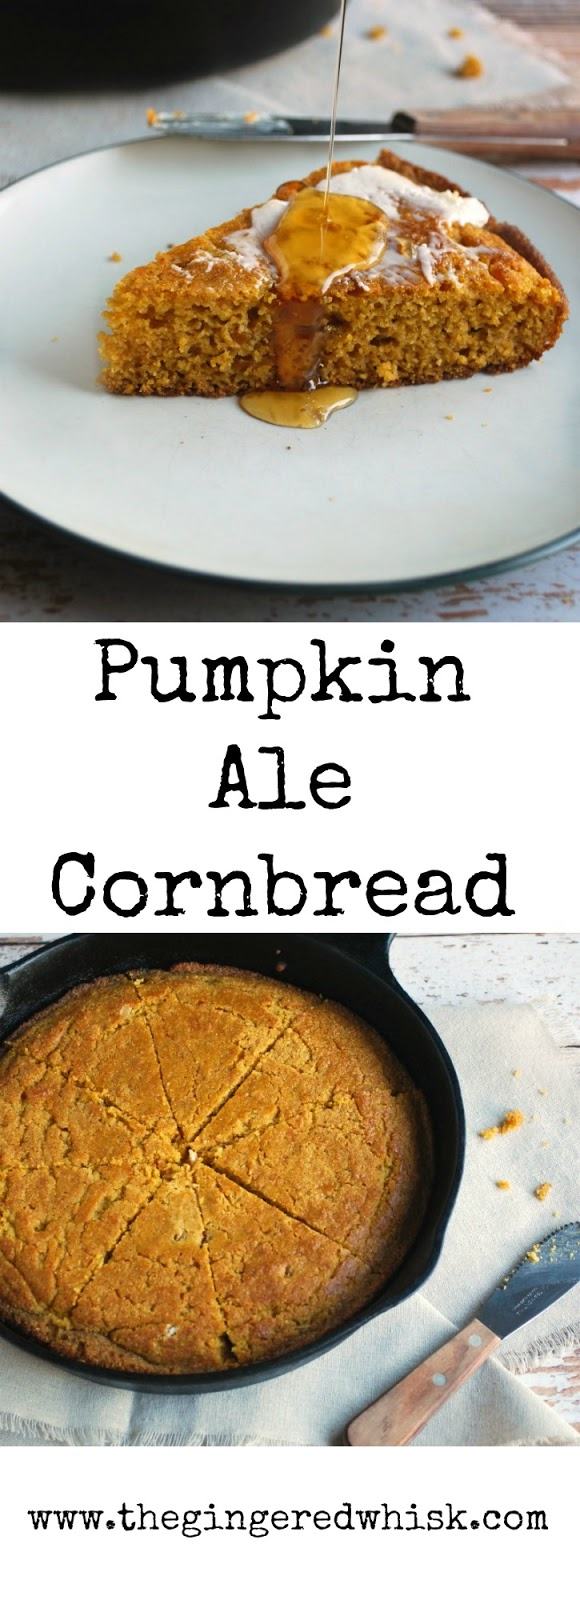 This skillet cornbread is the perfect fall side dish - infused with hearty ale, real pumpkin, and maple syrup. It will pair gorgeously with anything you serve it with. 